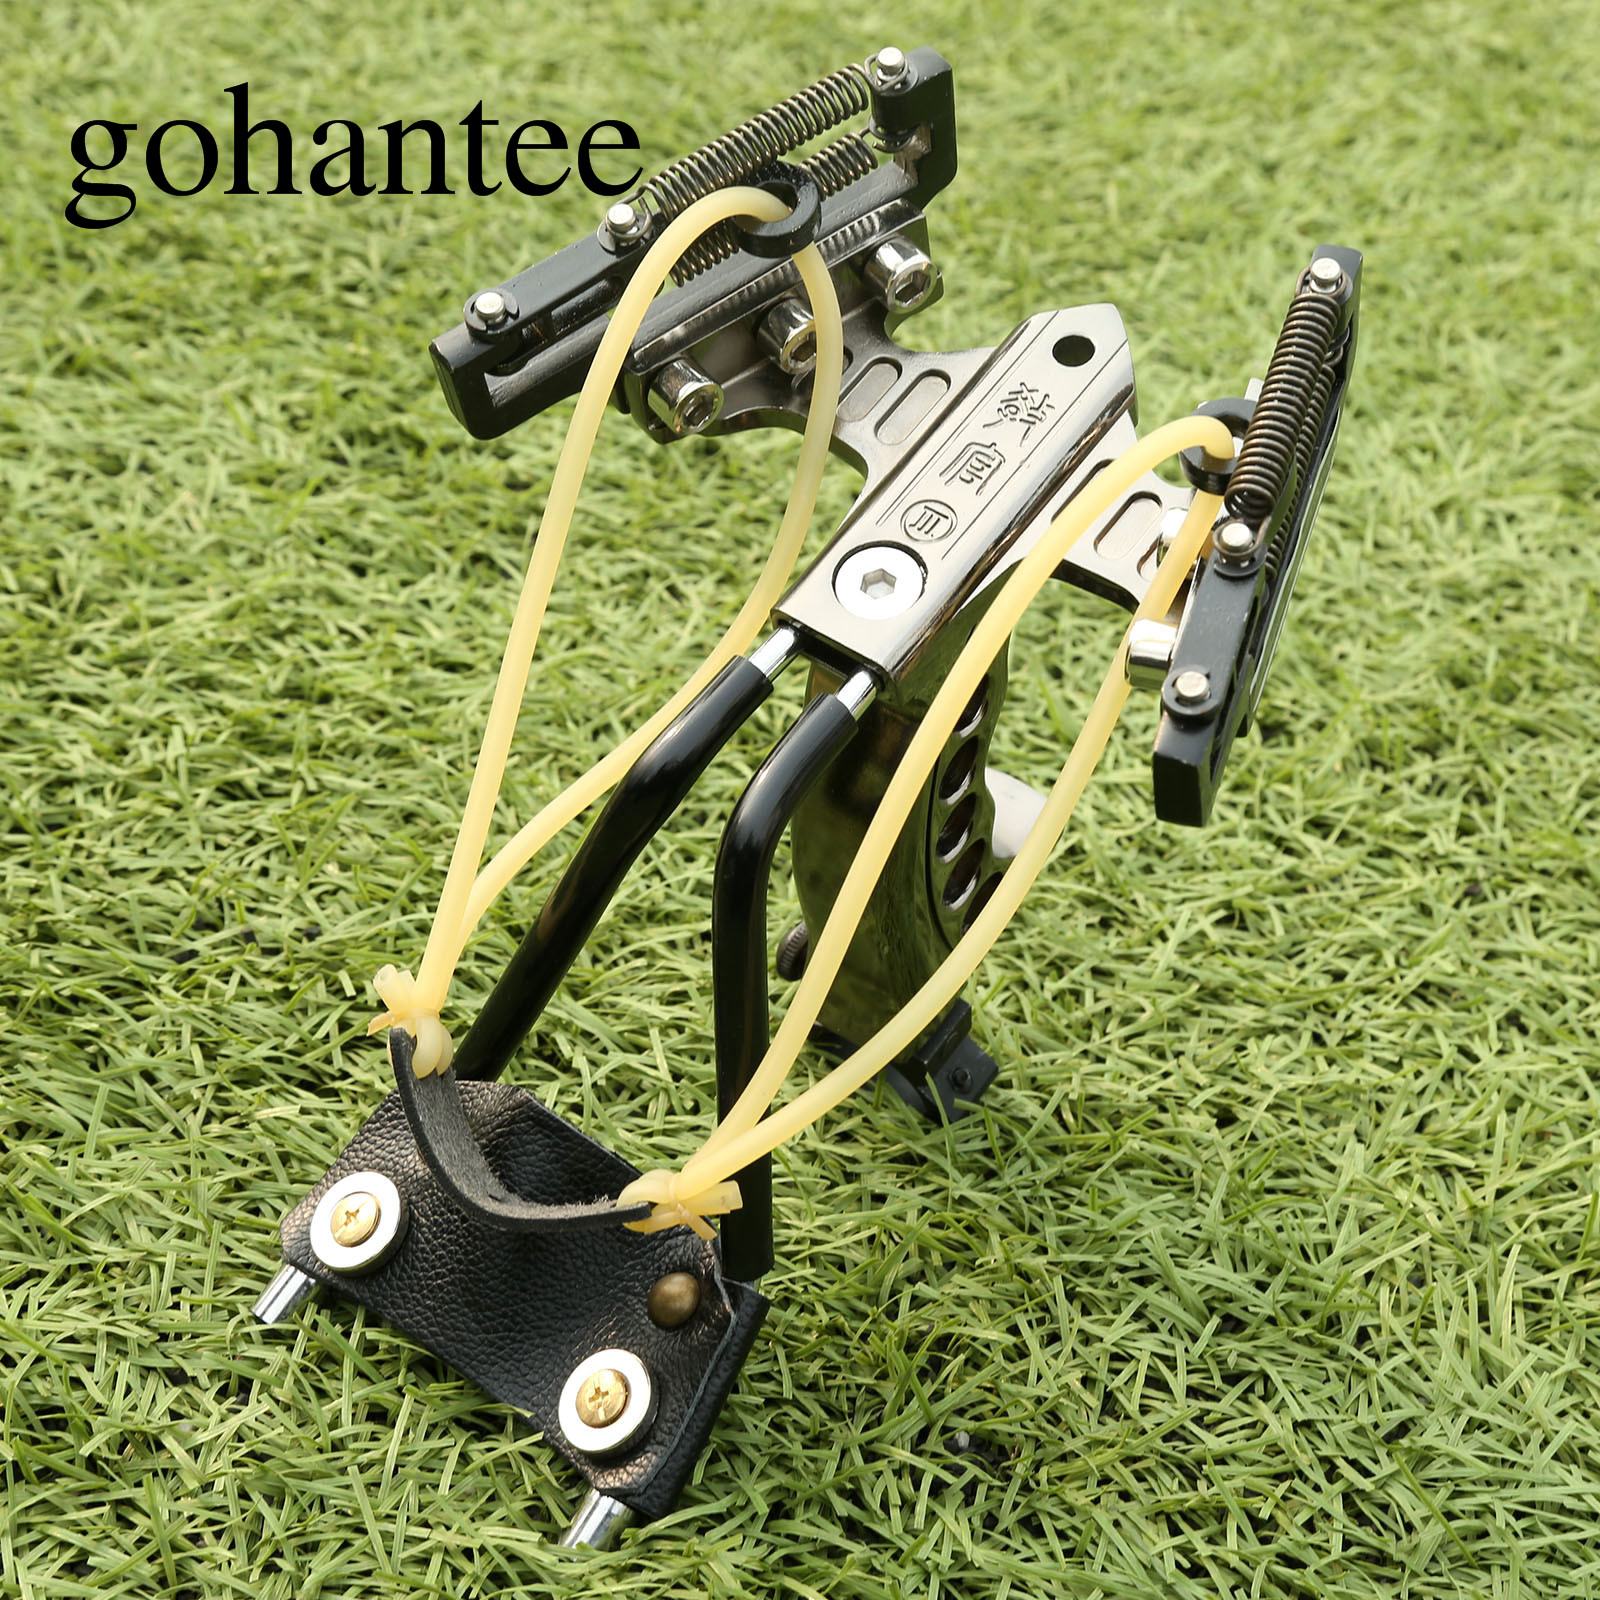 gohantee Tactical Heavy Duty Stainless Steel Slingshot with 4 Spring Wrist Brace Sling Shots Outdoor Hunting Slingshots Catapult w era часы признание  105х28 см  синий   sc ugdkx